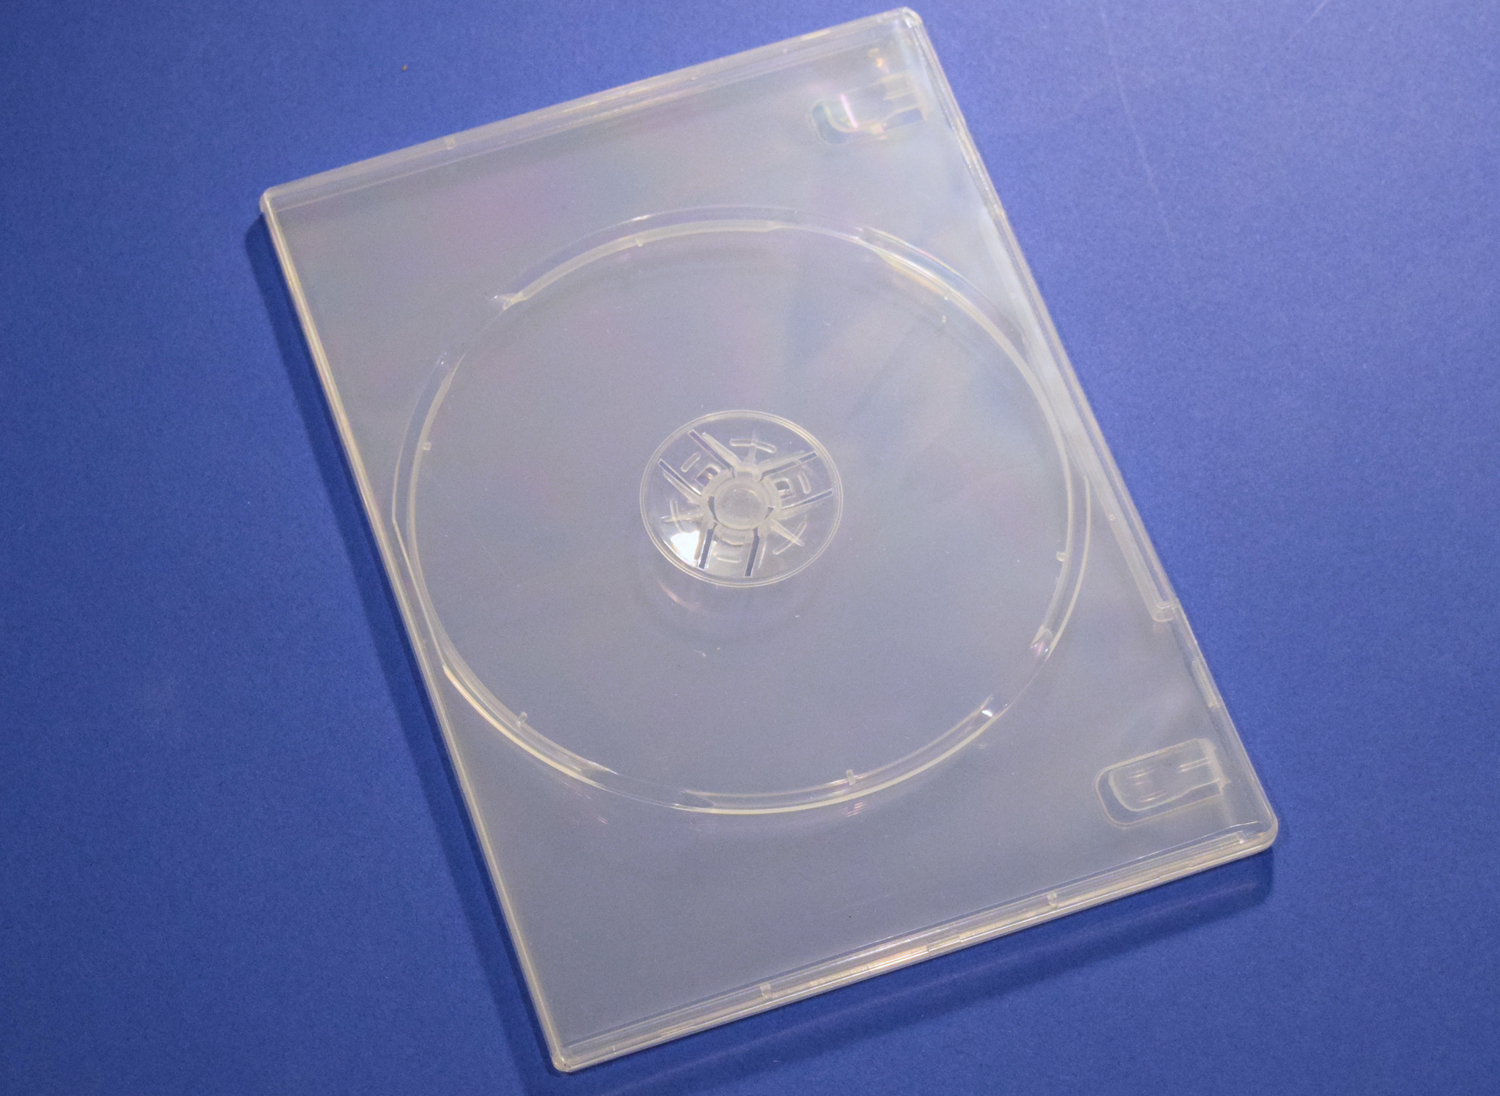 It's just a photo of Terrible Clear Cd Dvd Labels